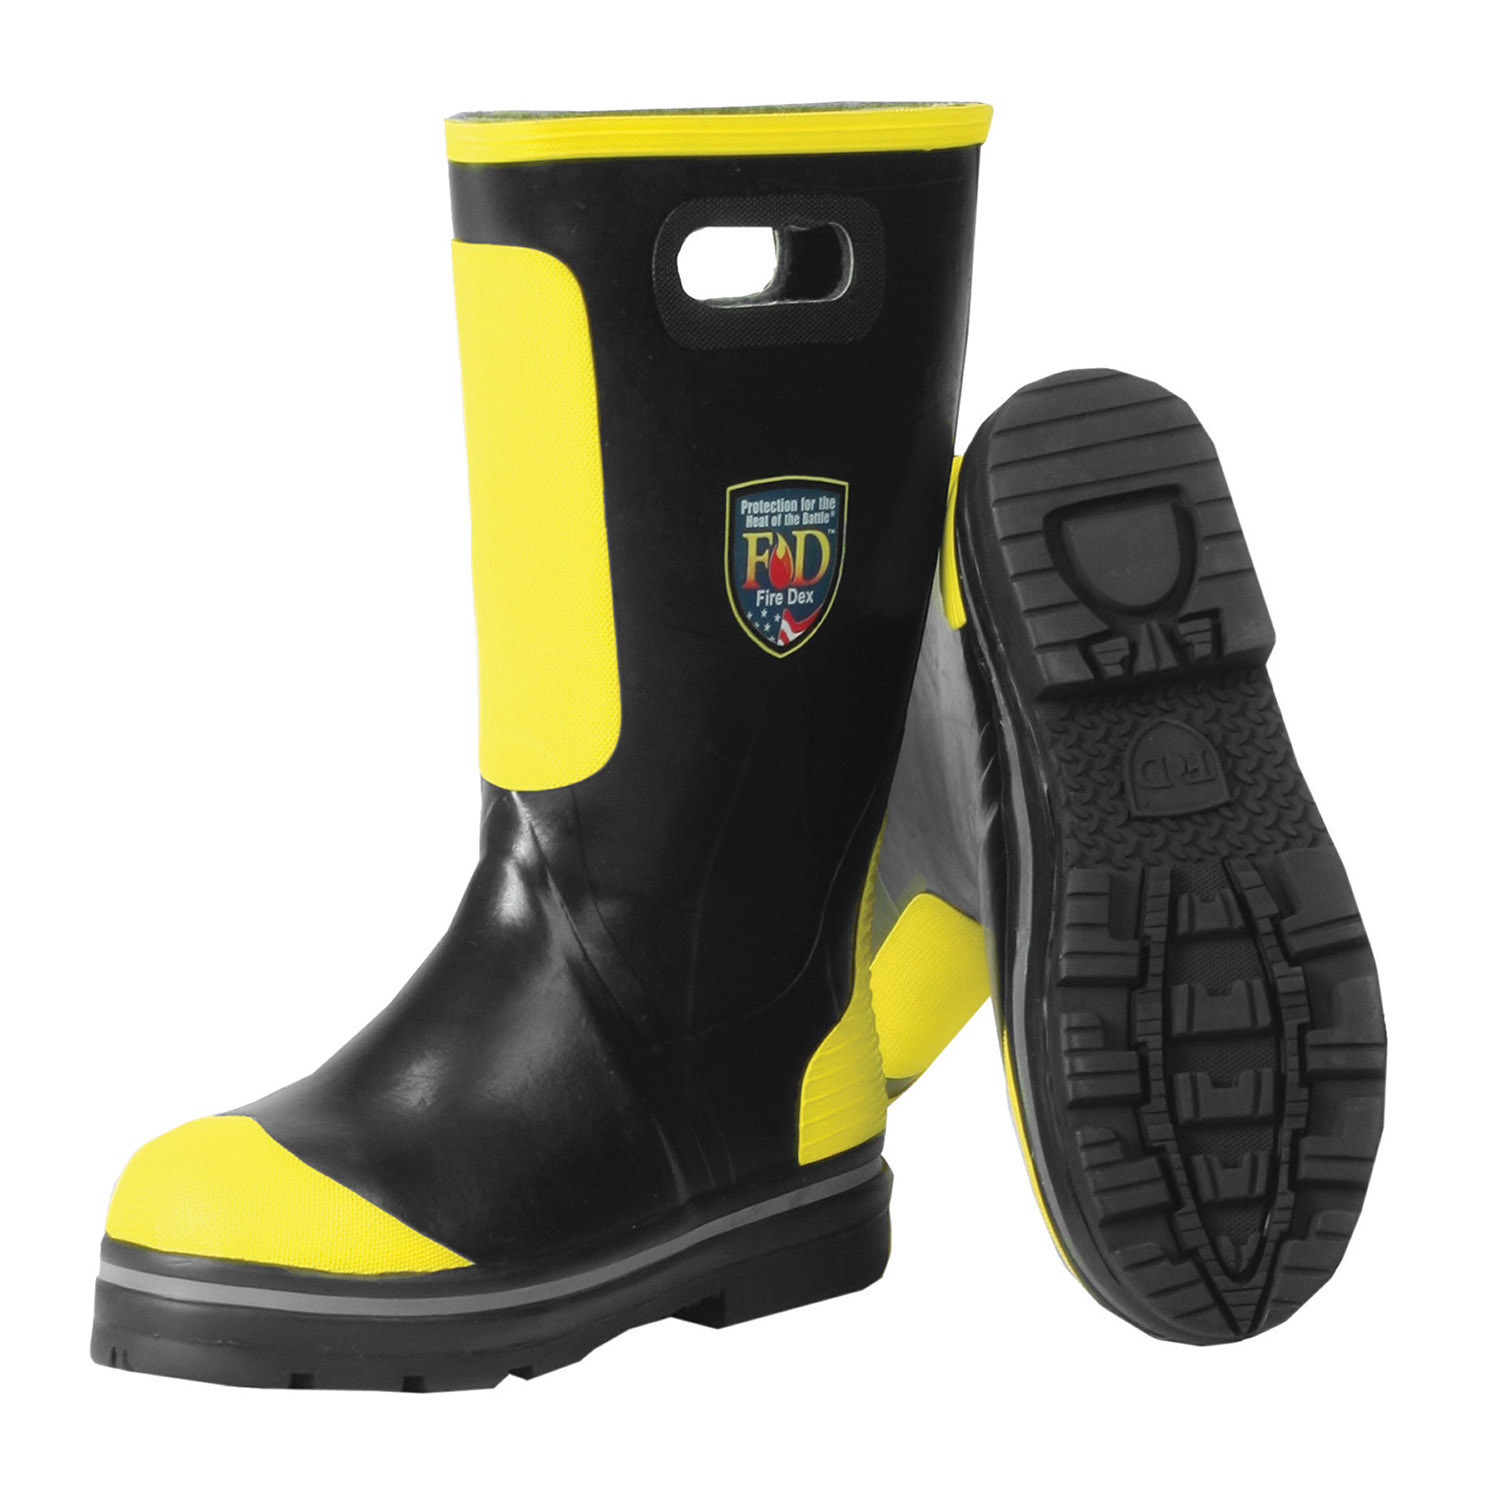 Fire Dex Rubber Fire Boot